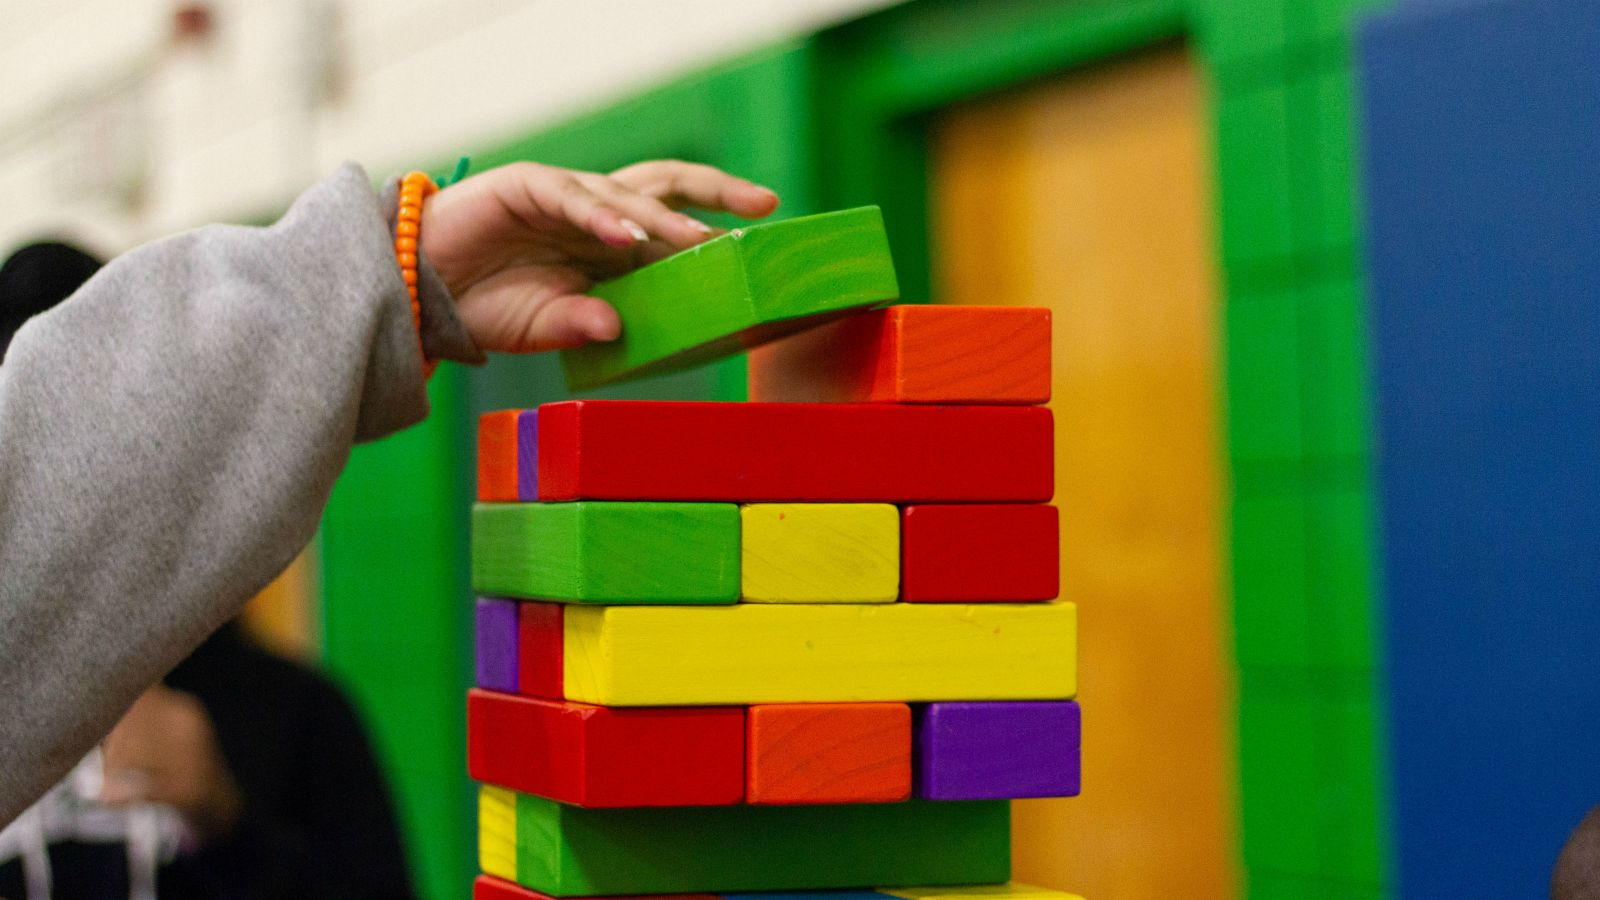 A close-up image of a hand placing a green block on an oversized Jenga set.